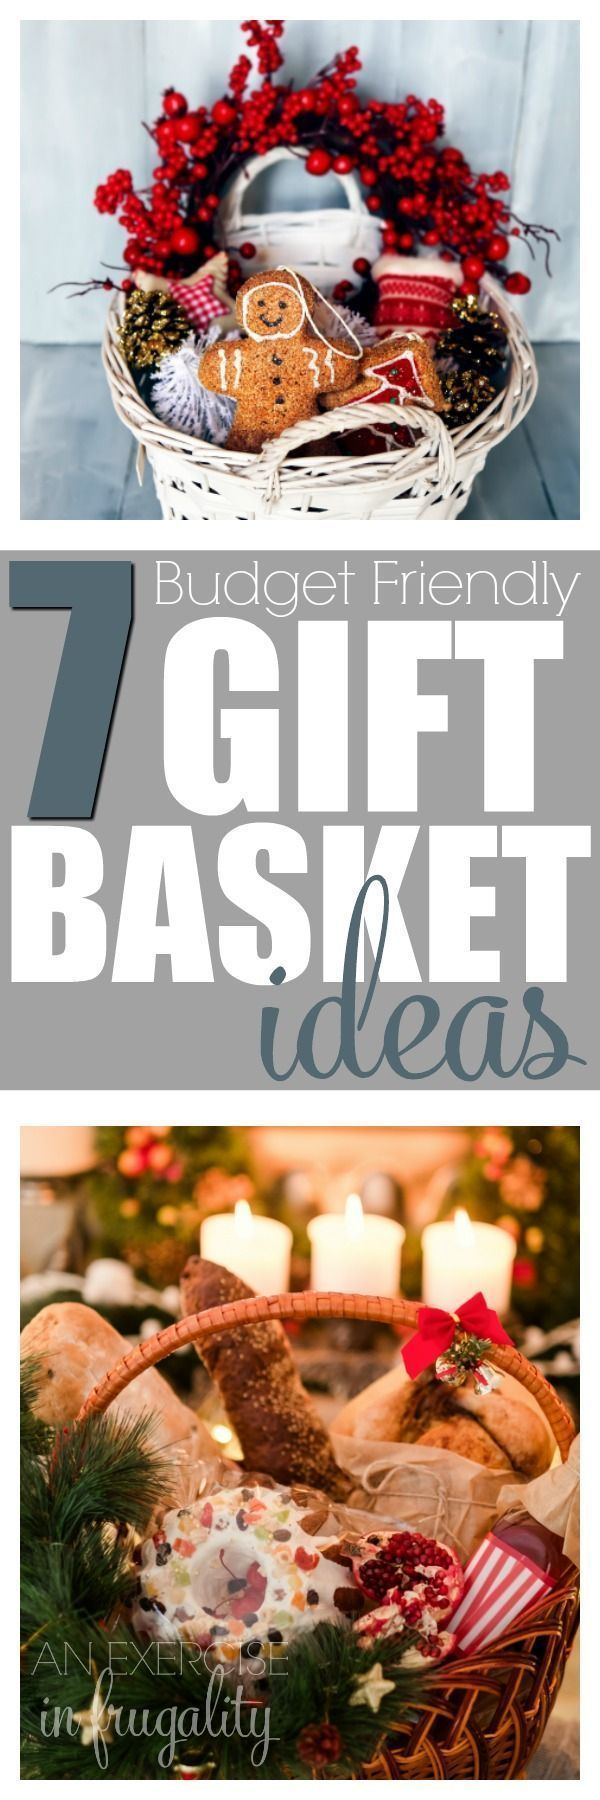 Holiday Gift Ideas on a Budget | An Exercise in Frugality